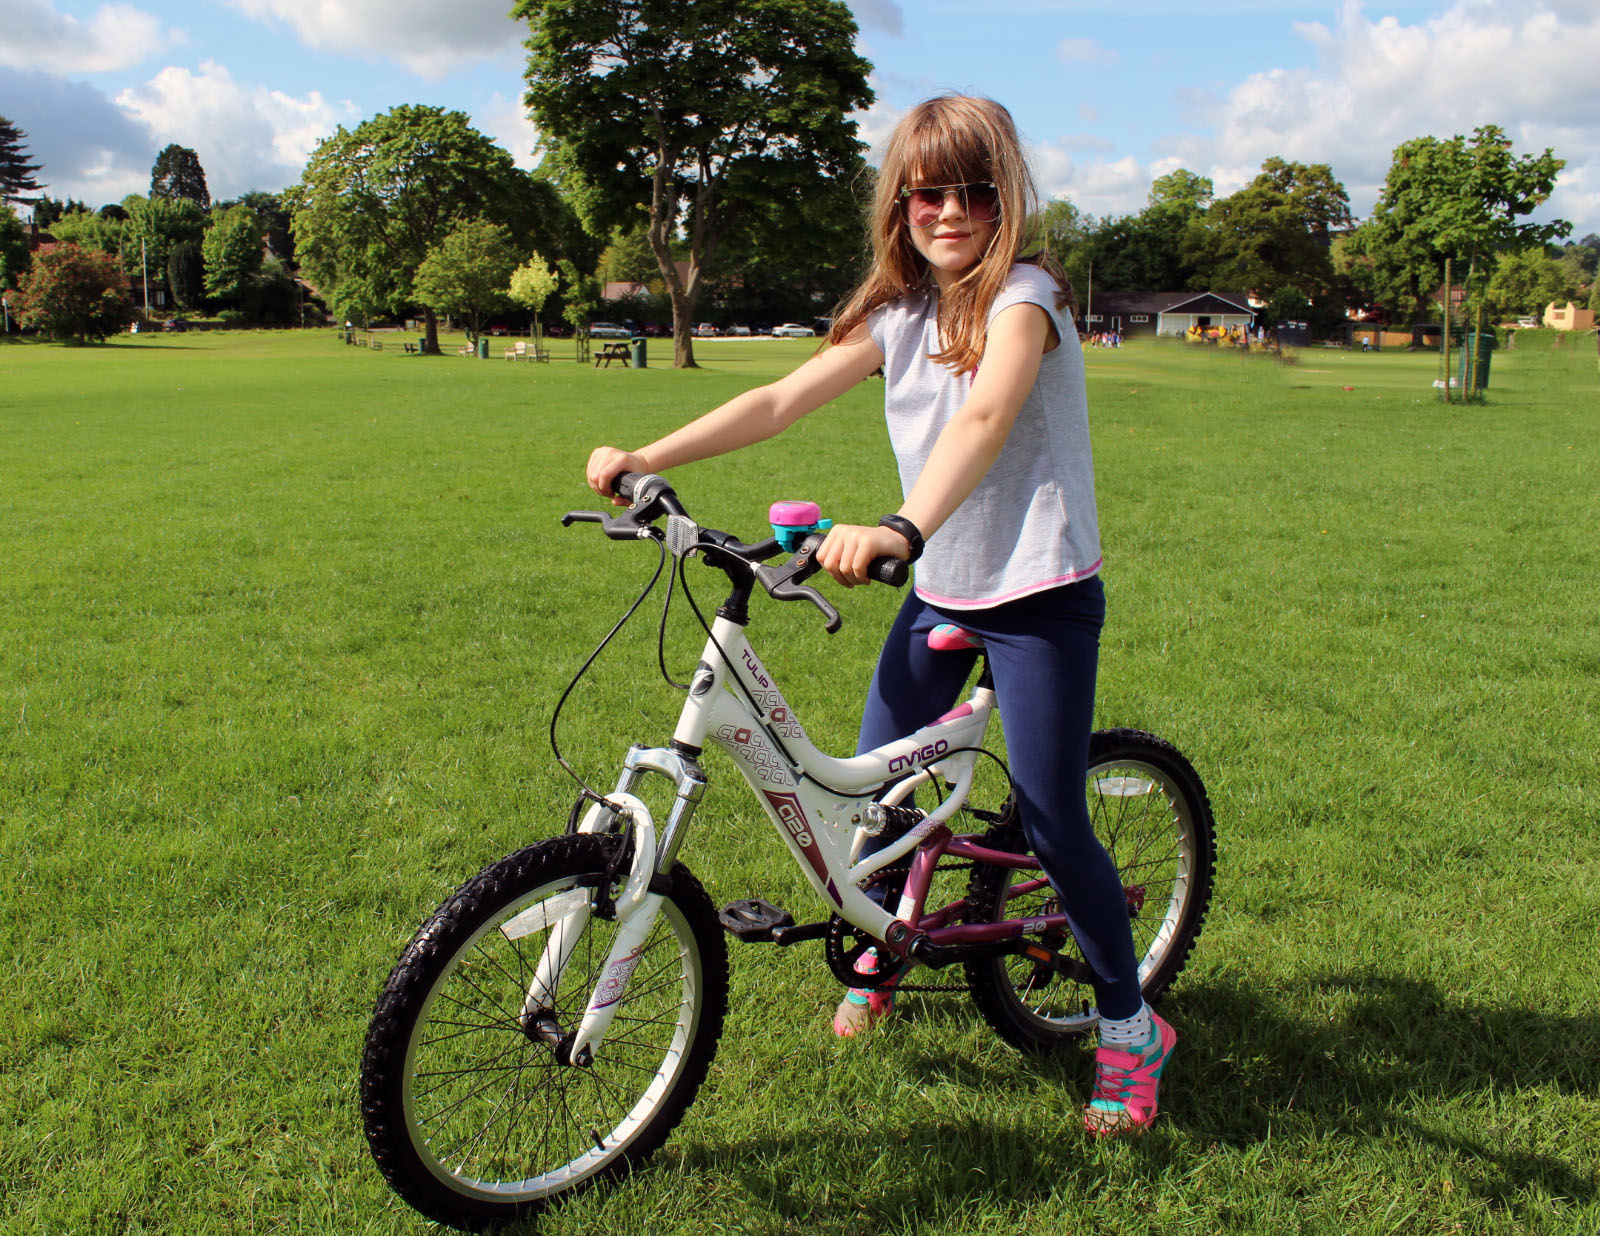 new bike, child's bike, active children, healthy children, dad blog uk, dadbloguk.com, school run dad, parenting advice